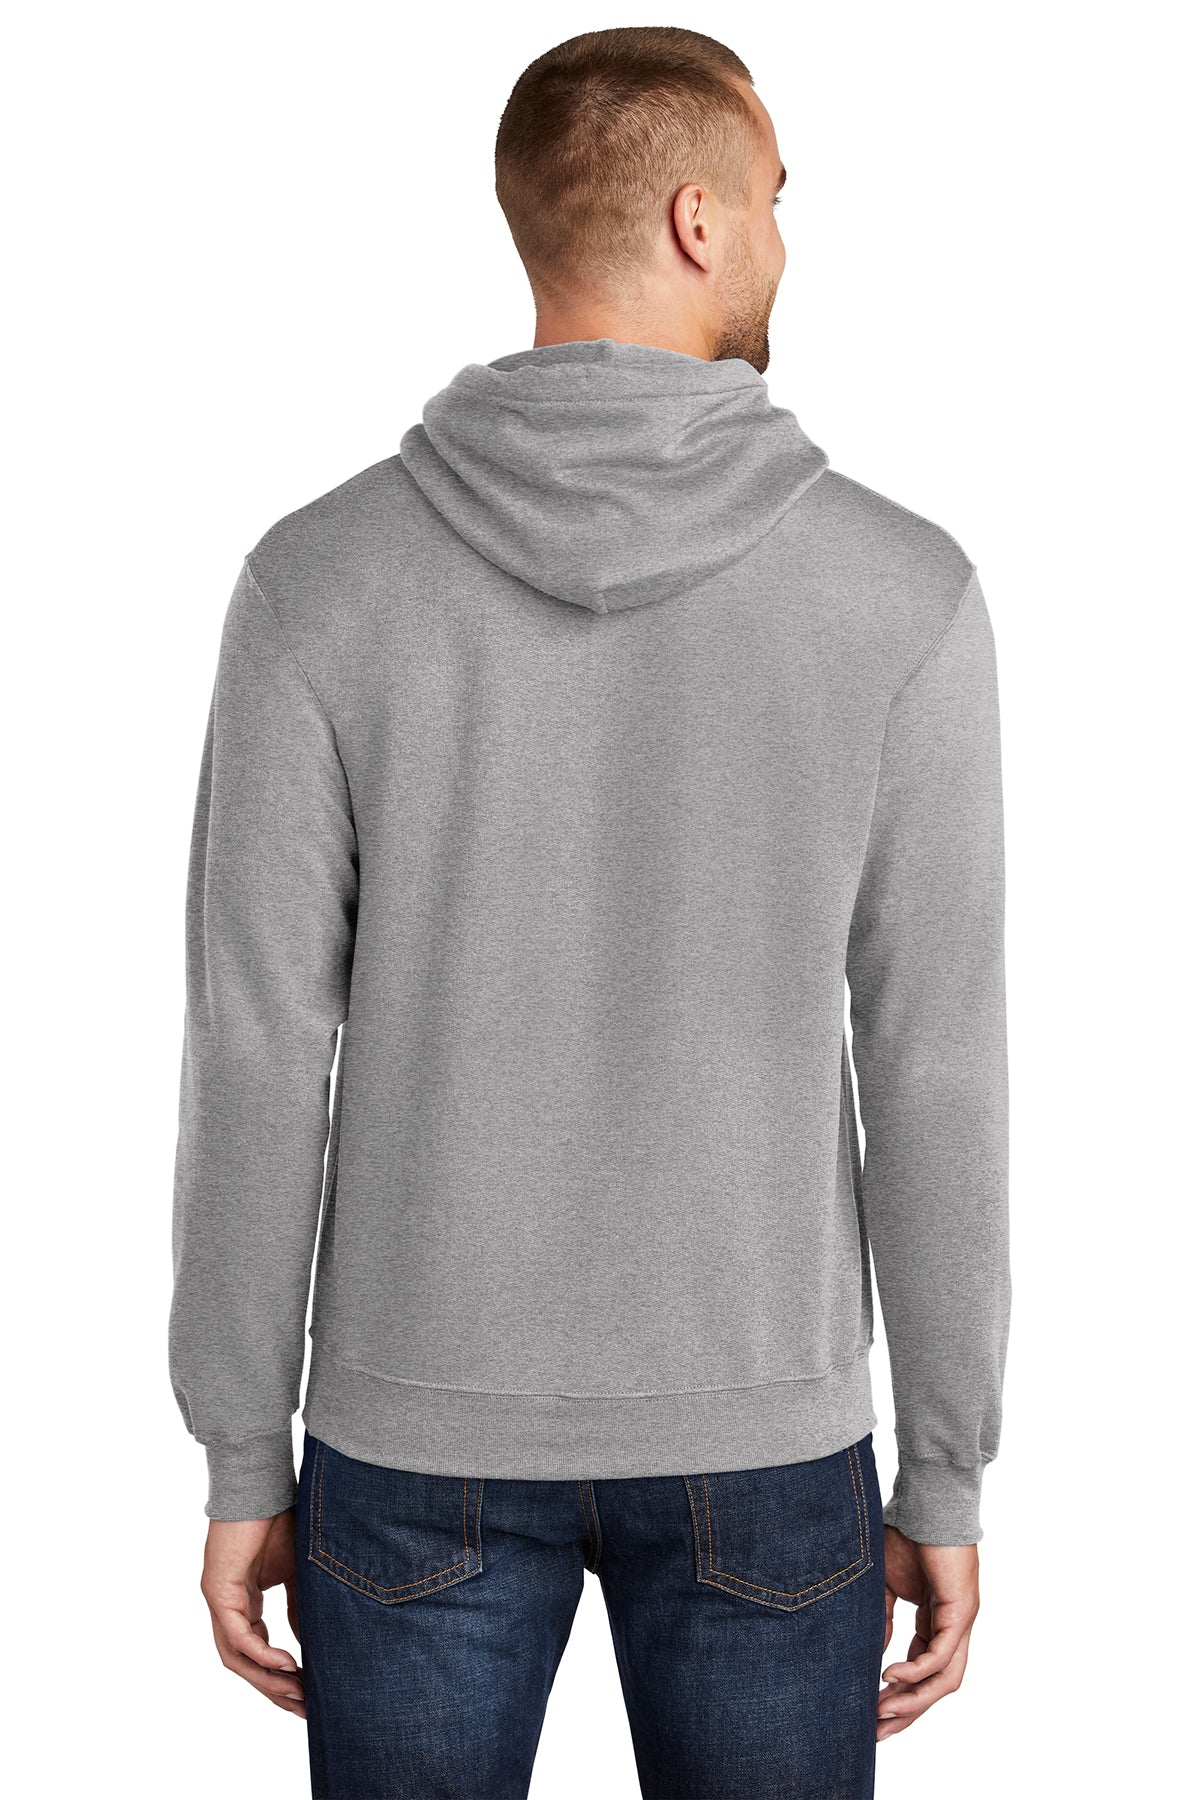 Port & Company PC78H Mens Core Fleece Hooded Sweatshirt Hoodie Heather Grey Back